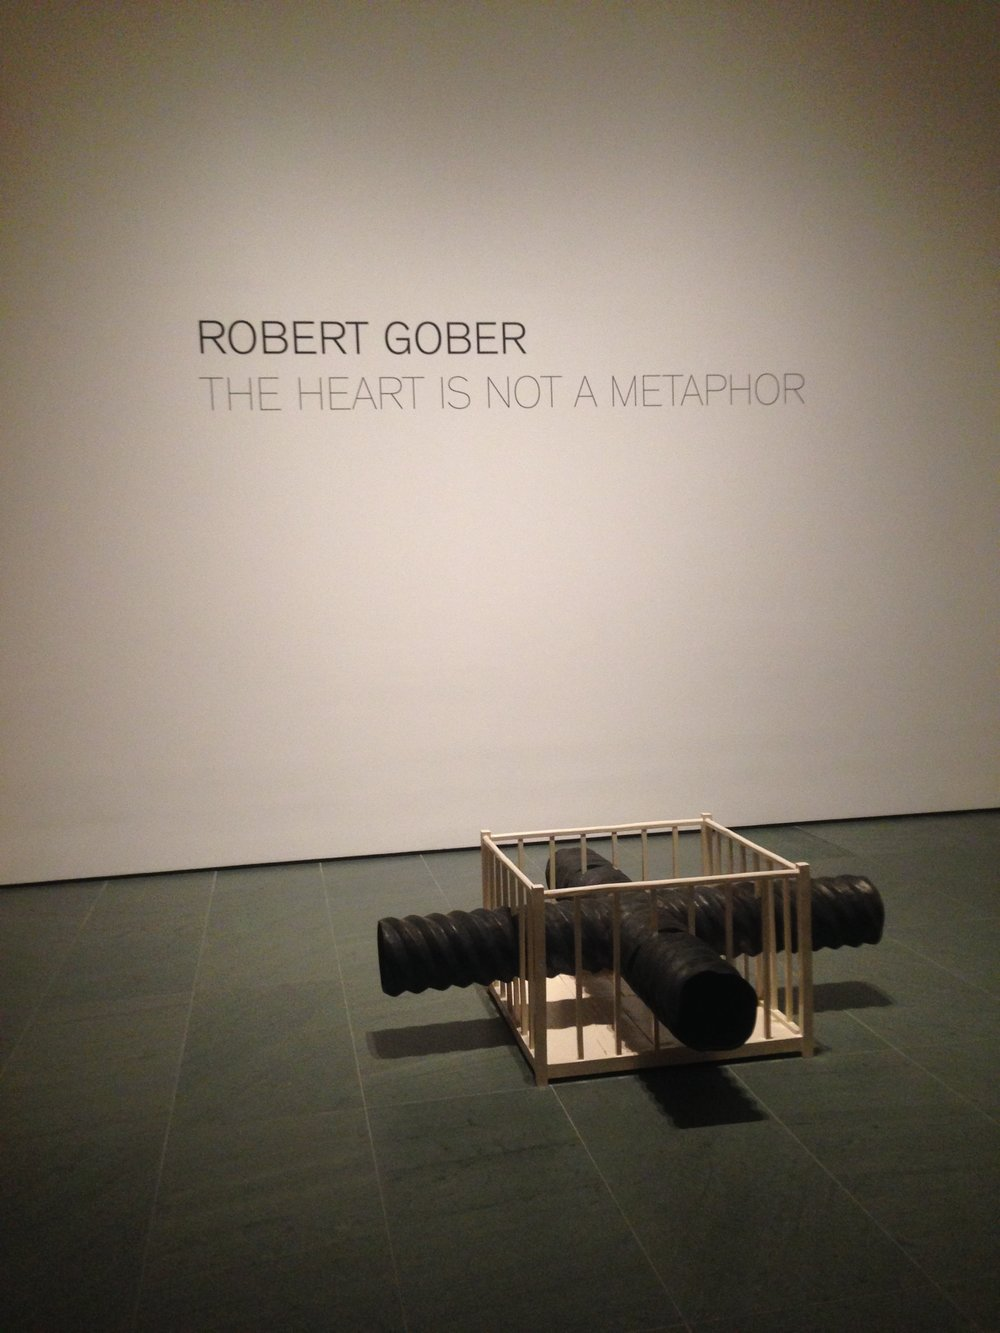 Entrance to Robert Gober's mid-career retrospective at MoMA